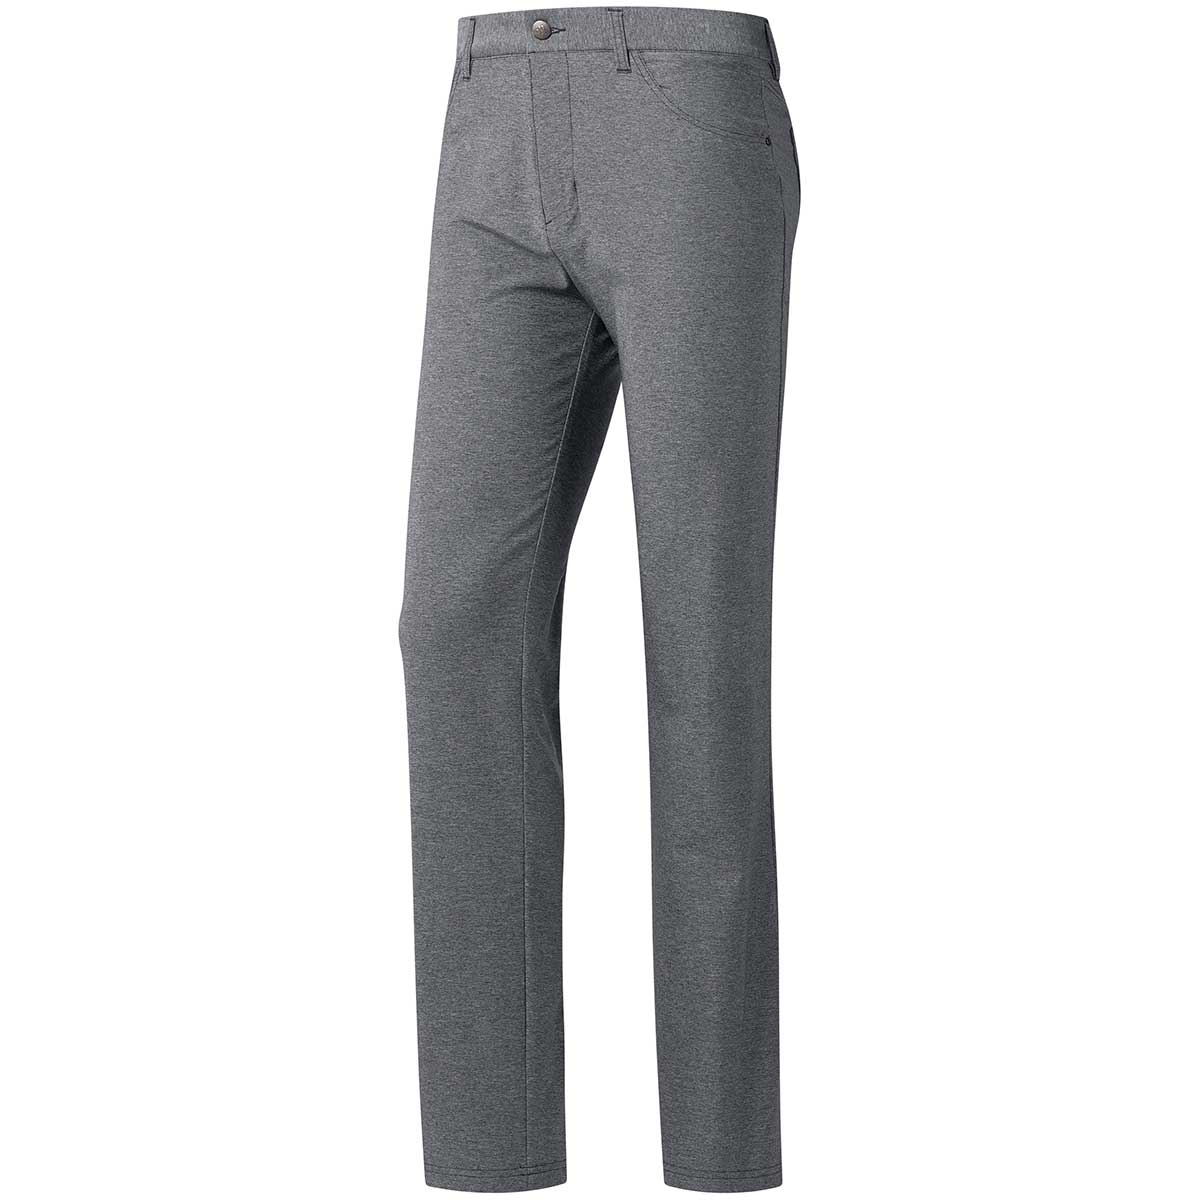 Adidas Ultimate365 Heathered Five-Pocket Pants - Grey Three